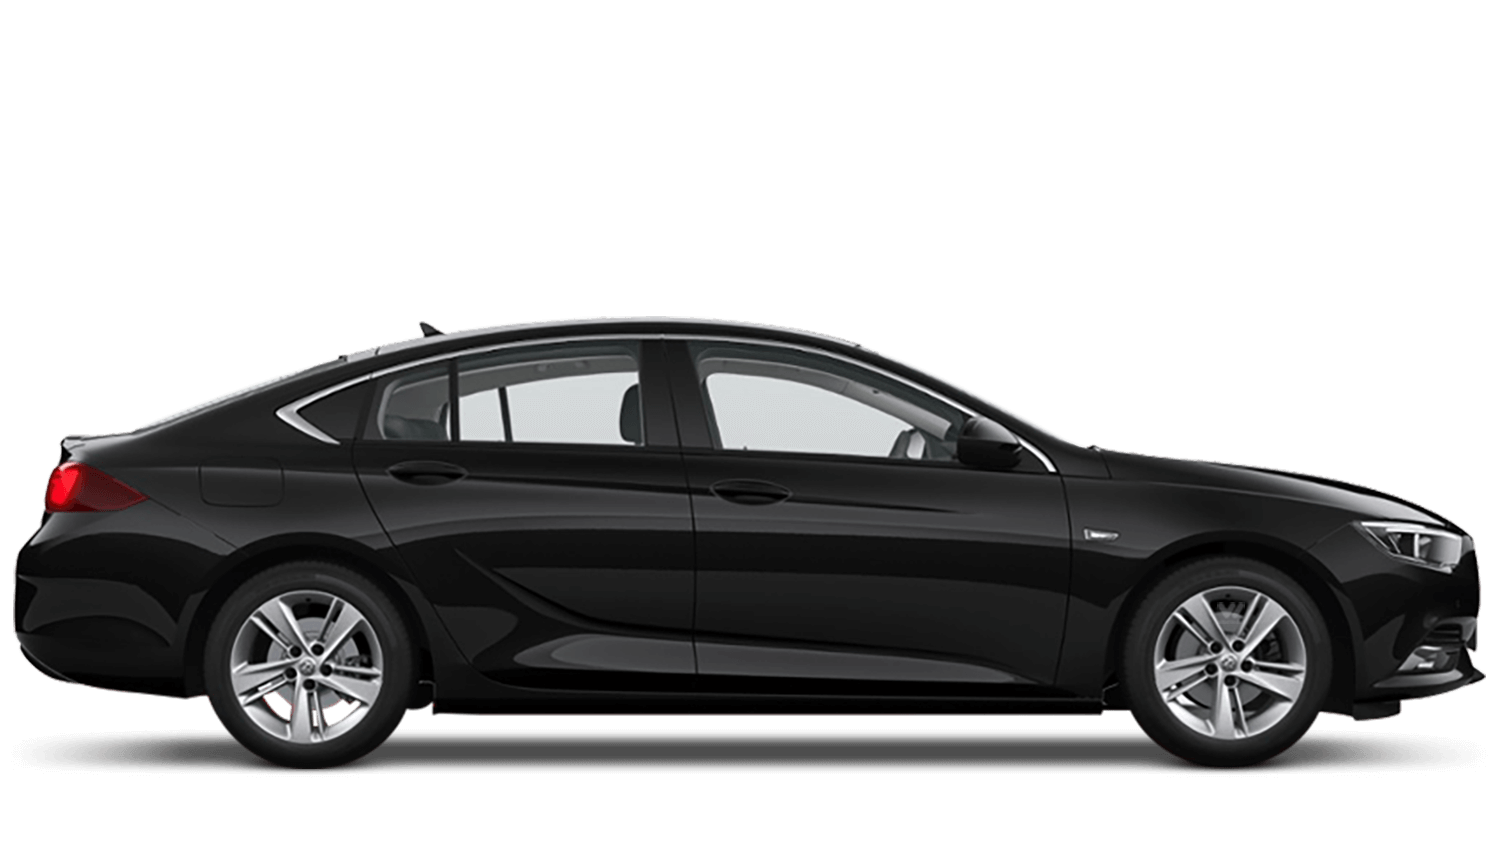 Insignia Grand Sport Nearly New Offers